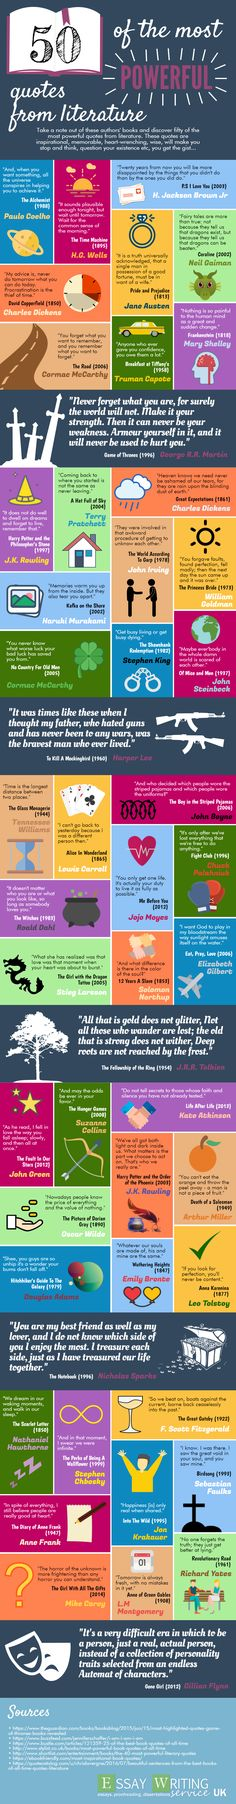 50 of the most powerful quotes from literature!